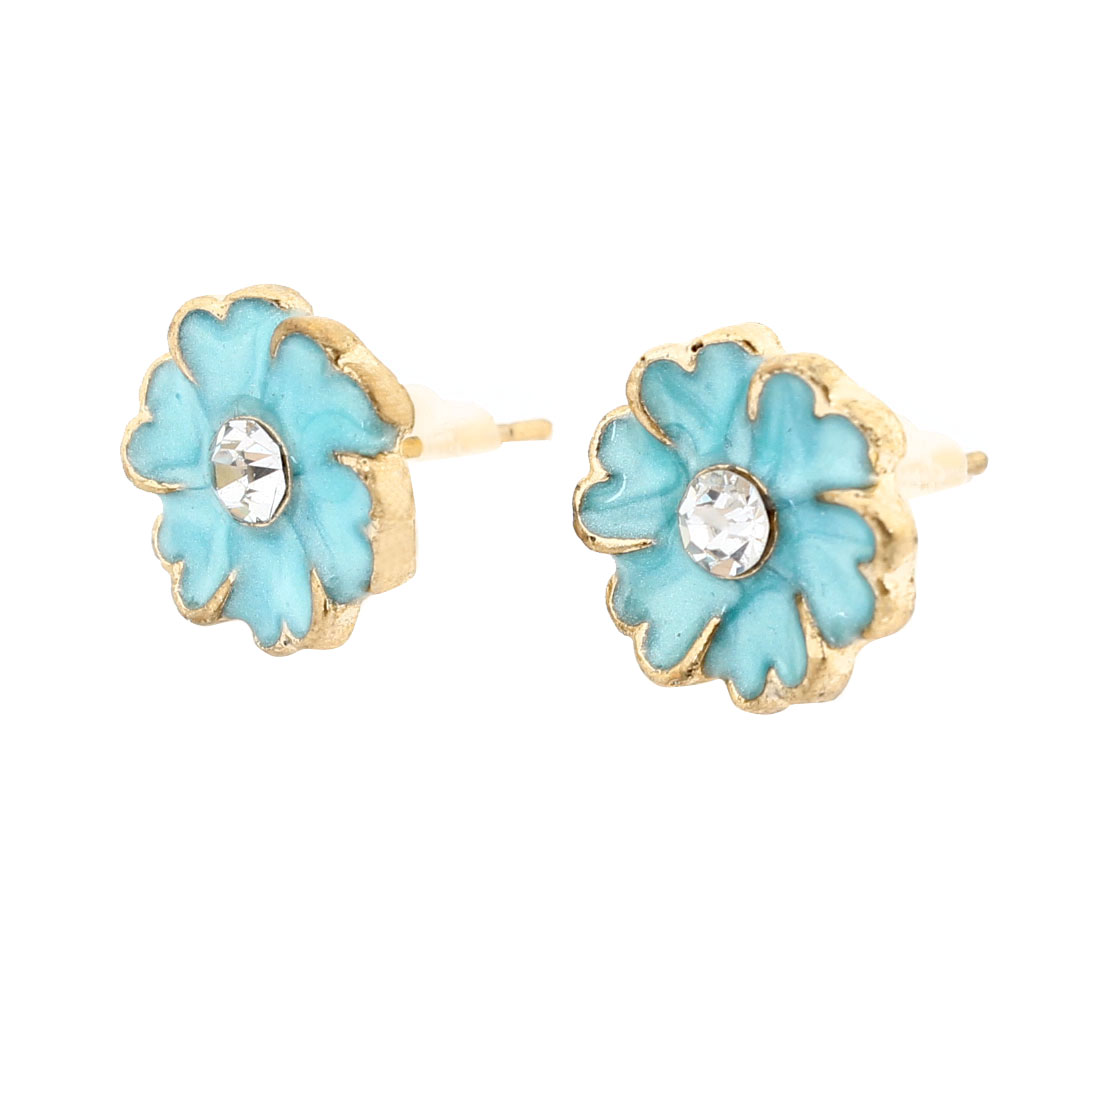 Pair Rhinestones Inlaid Flower Shaped Ornament Stud Earrings Pale Blue for Lady